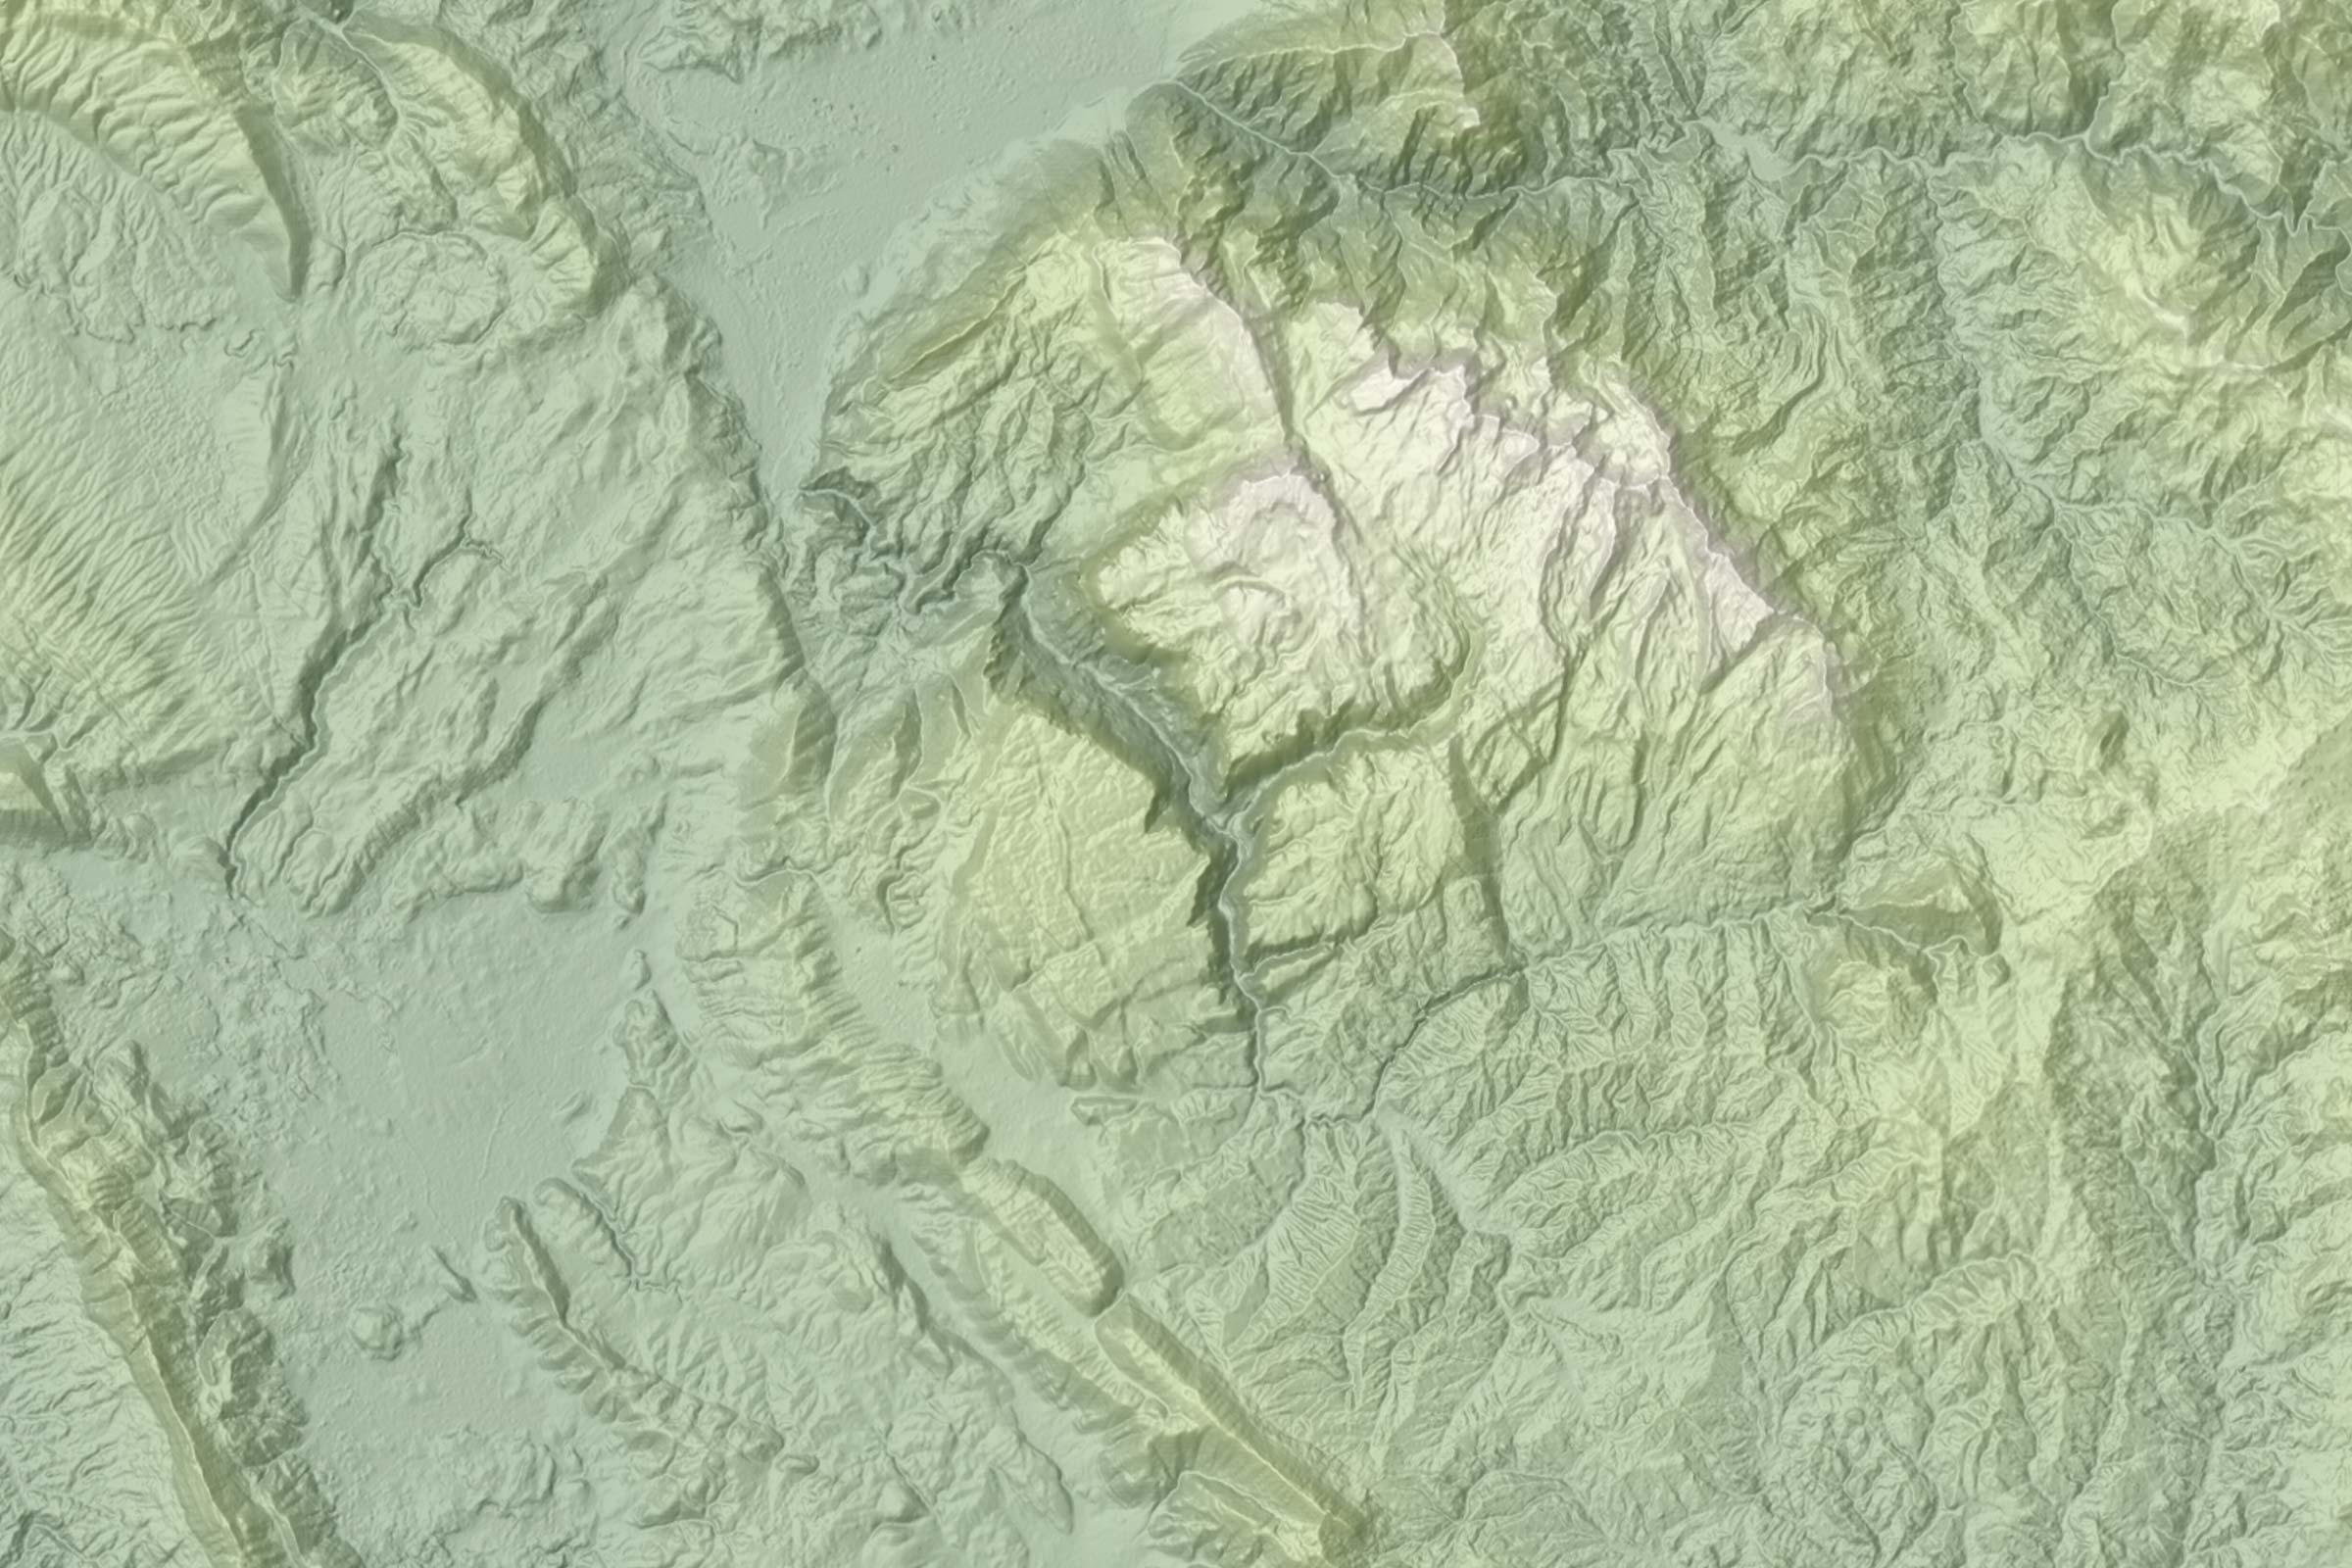 eARTh Engine: Turn cold pixels to a colorful Terrain